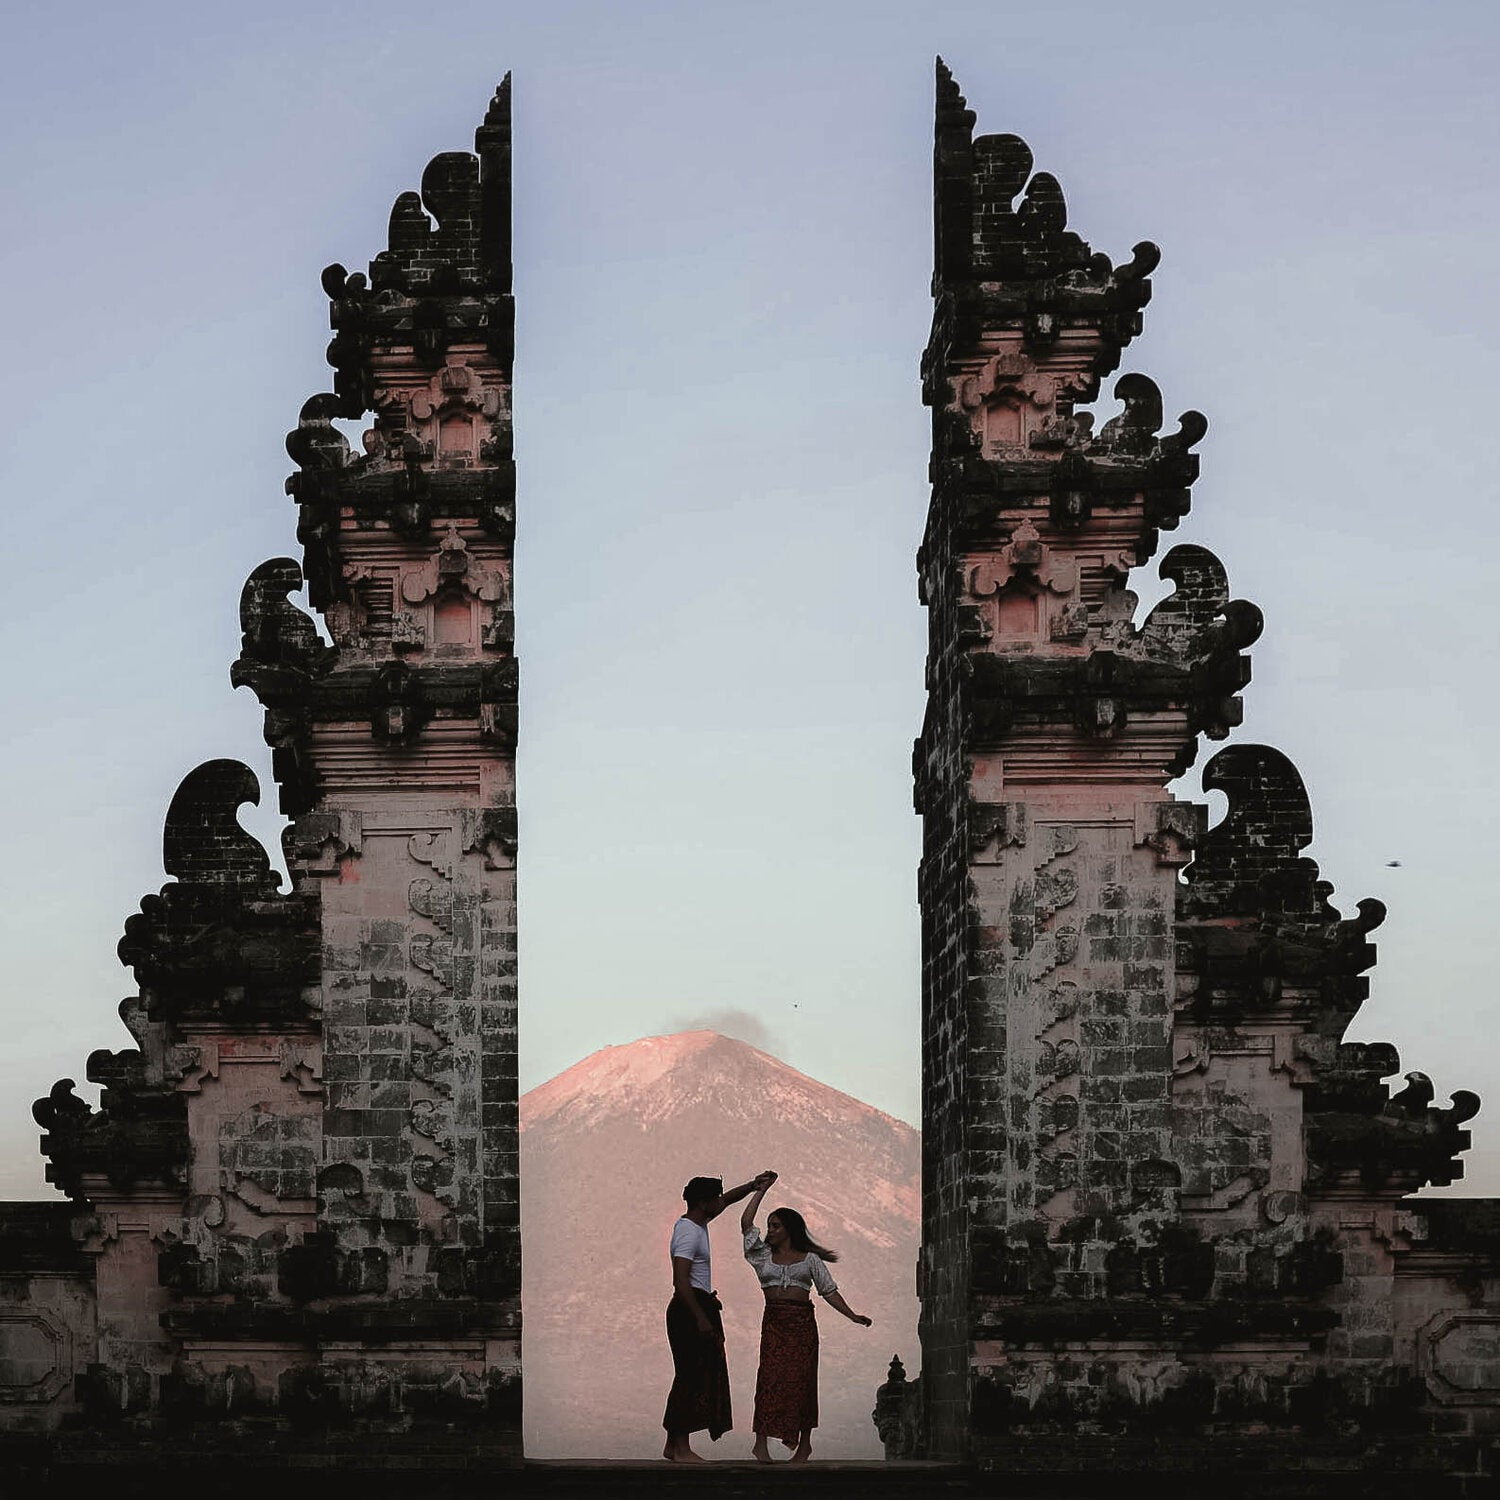 Lost LeBlanc and What the Chic at the Gates of heaven, Lempuyang Temple, Bali